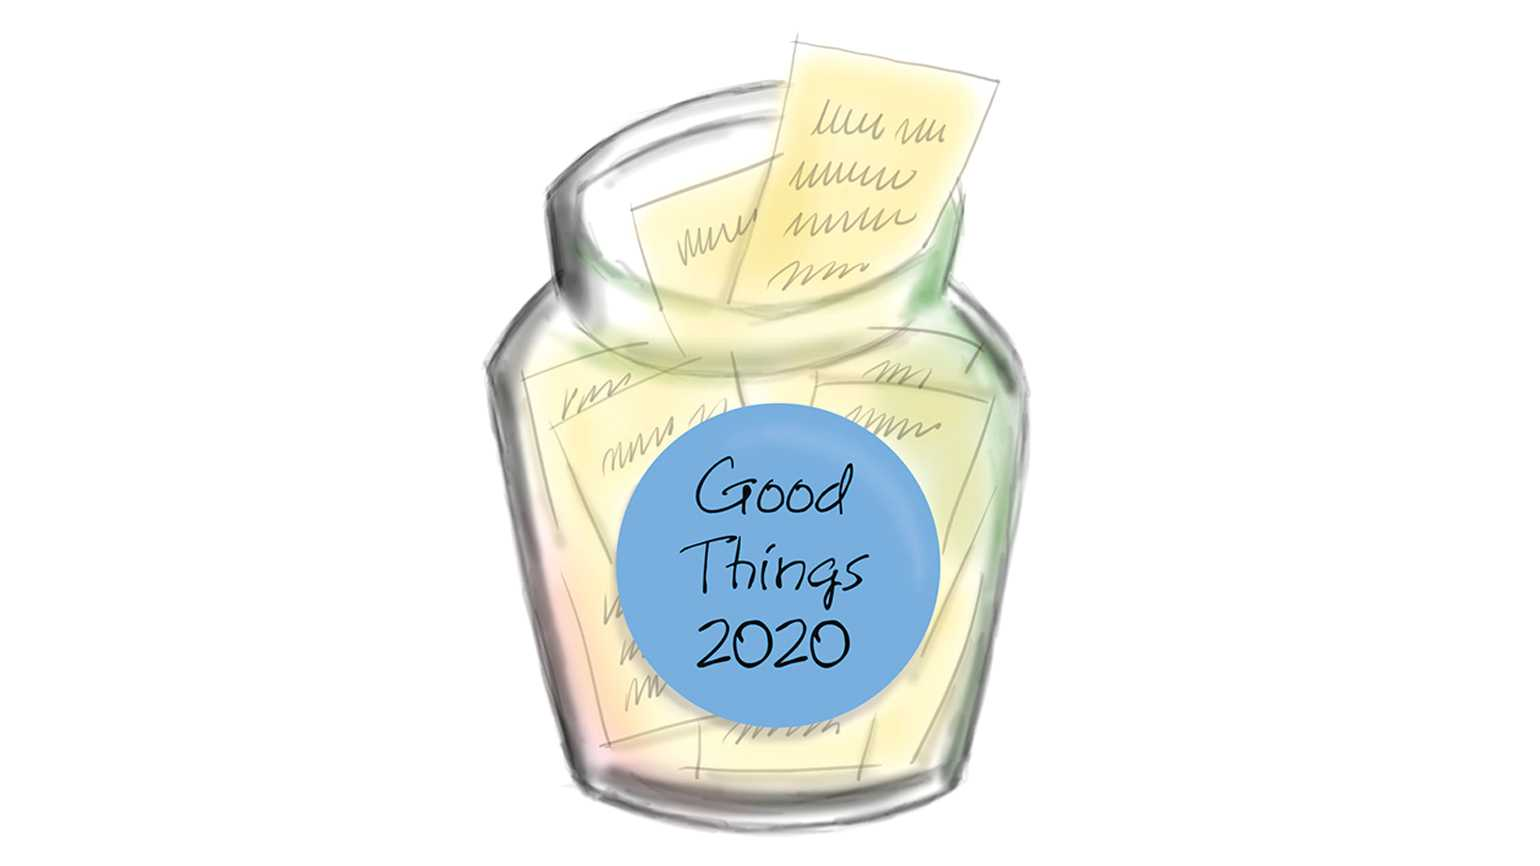 An illustration of the Good Things 2020 jar with notes inside; Illustration by Coco Masuda